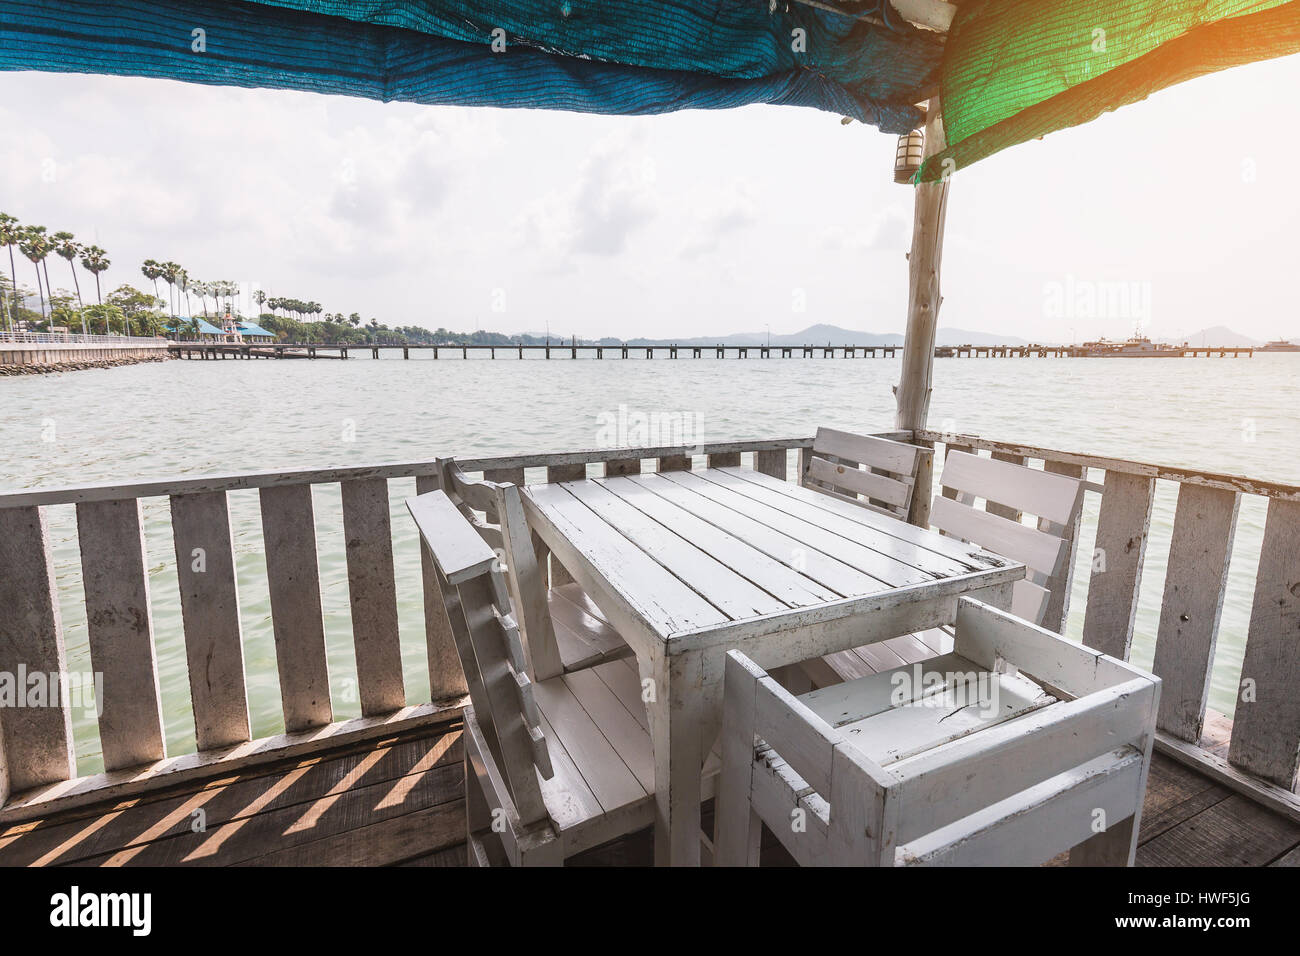 White Dining Table On Corner Of Indoor Beach Terrace Over Water Surface.  Terrace Surrounded By Wooden Wall And Covered By Colorful Canvas